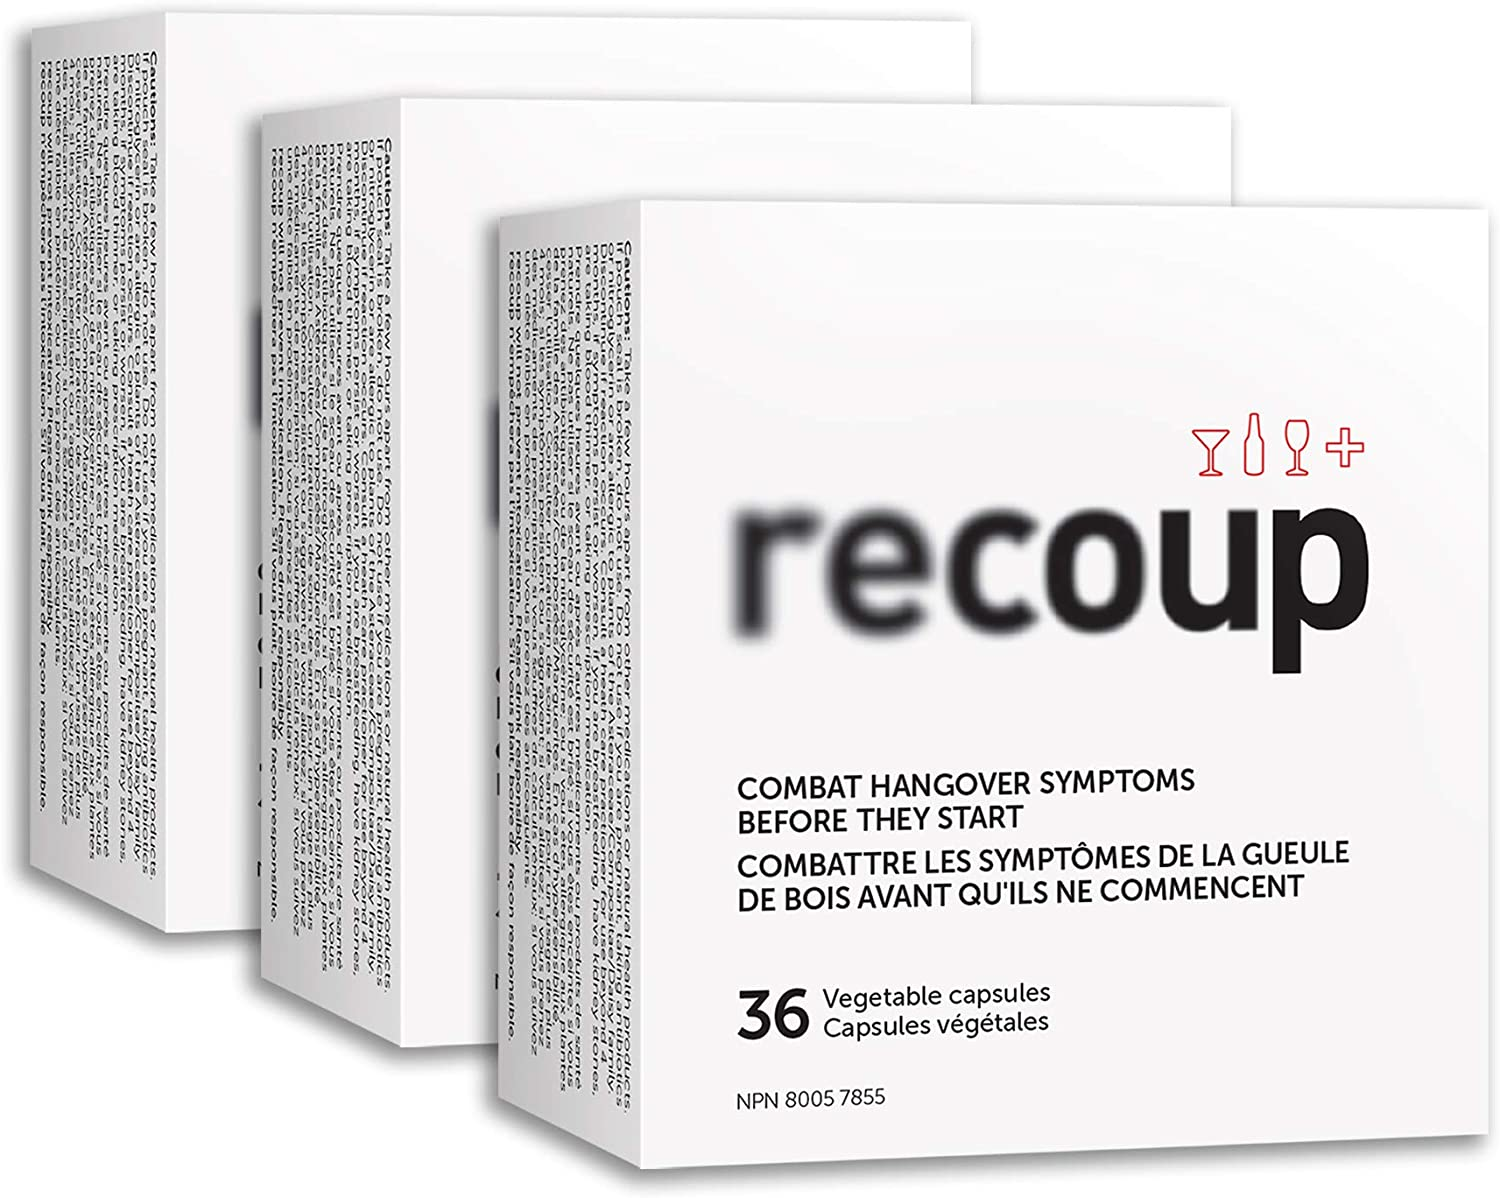 Recoup Hangover Remedy 3 Box Multipack Combat 18 Hangovers Doctor formulated